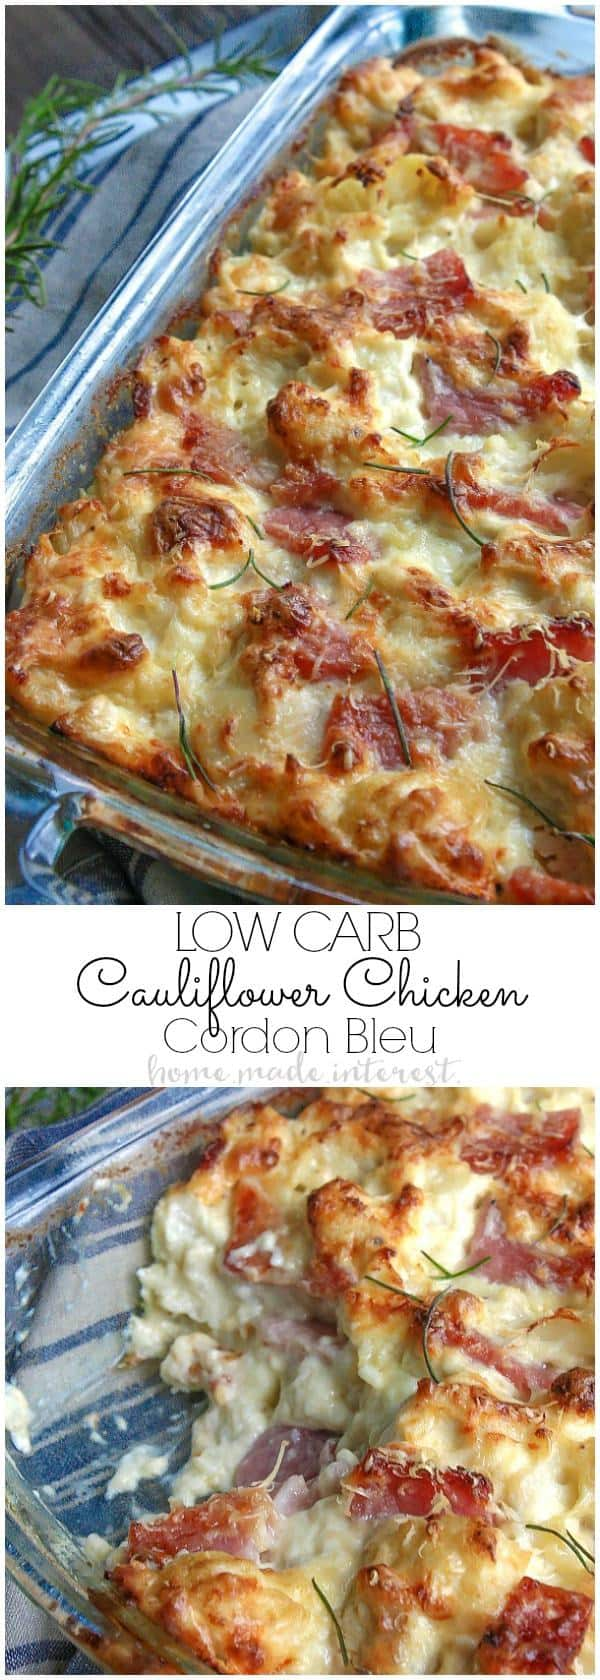 This Low Carb Chicken Cordon Bleu Casserole is an easy low carb dinner recipe made with cauliflower, ham, chicken, covered in a creamy dijon sauce.Note: Approximately 7 net carbs per serving.